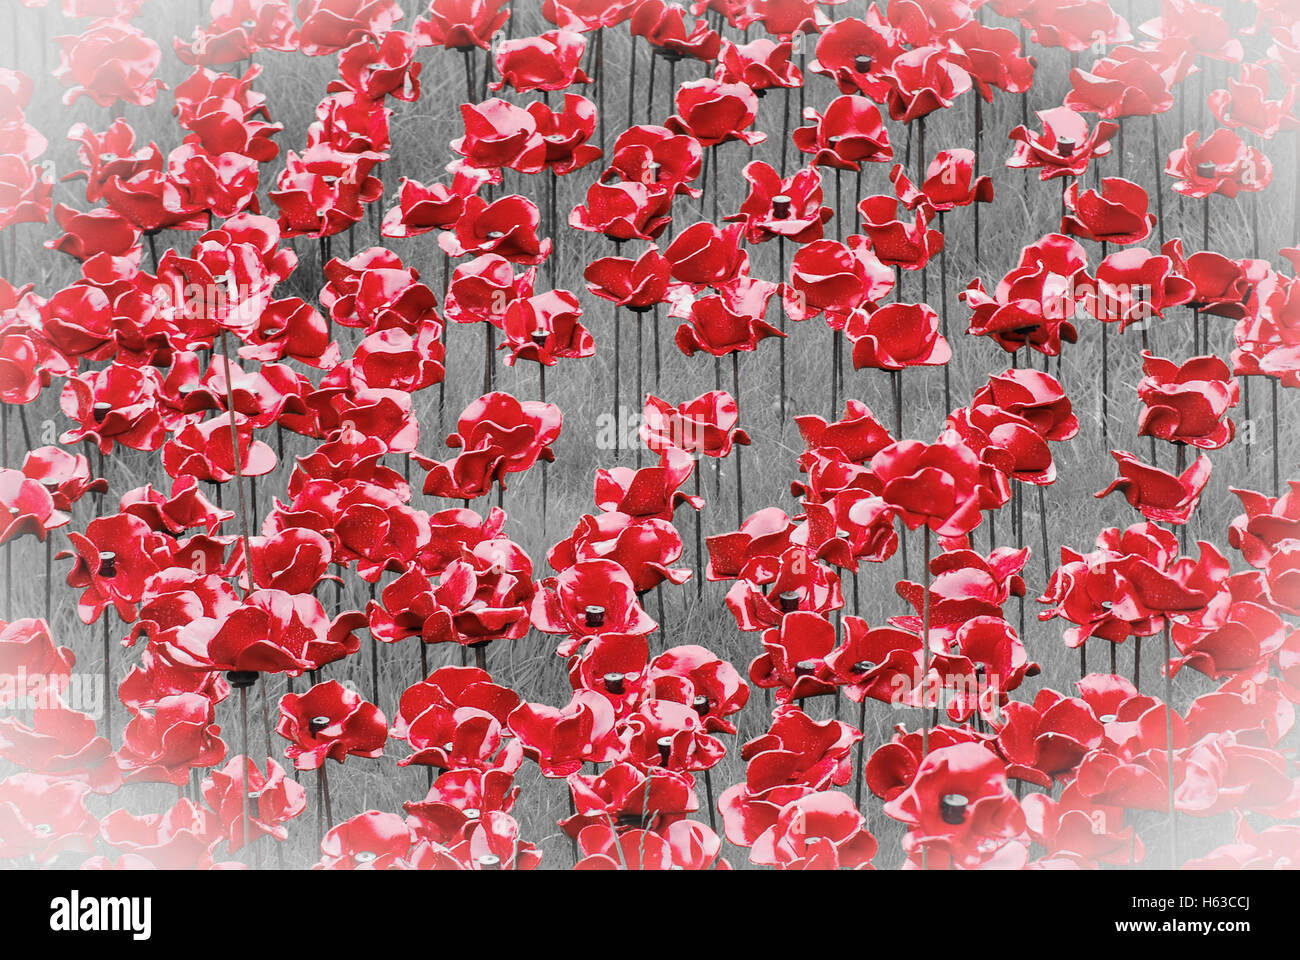 field of poppies - Stock Image